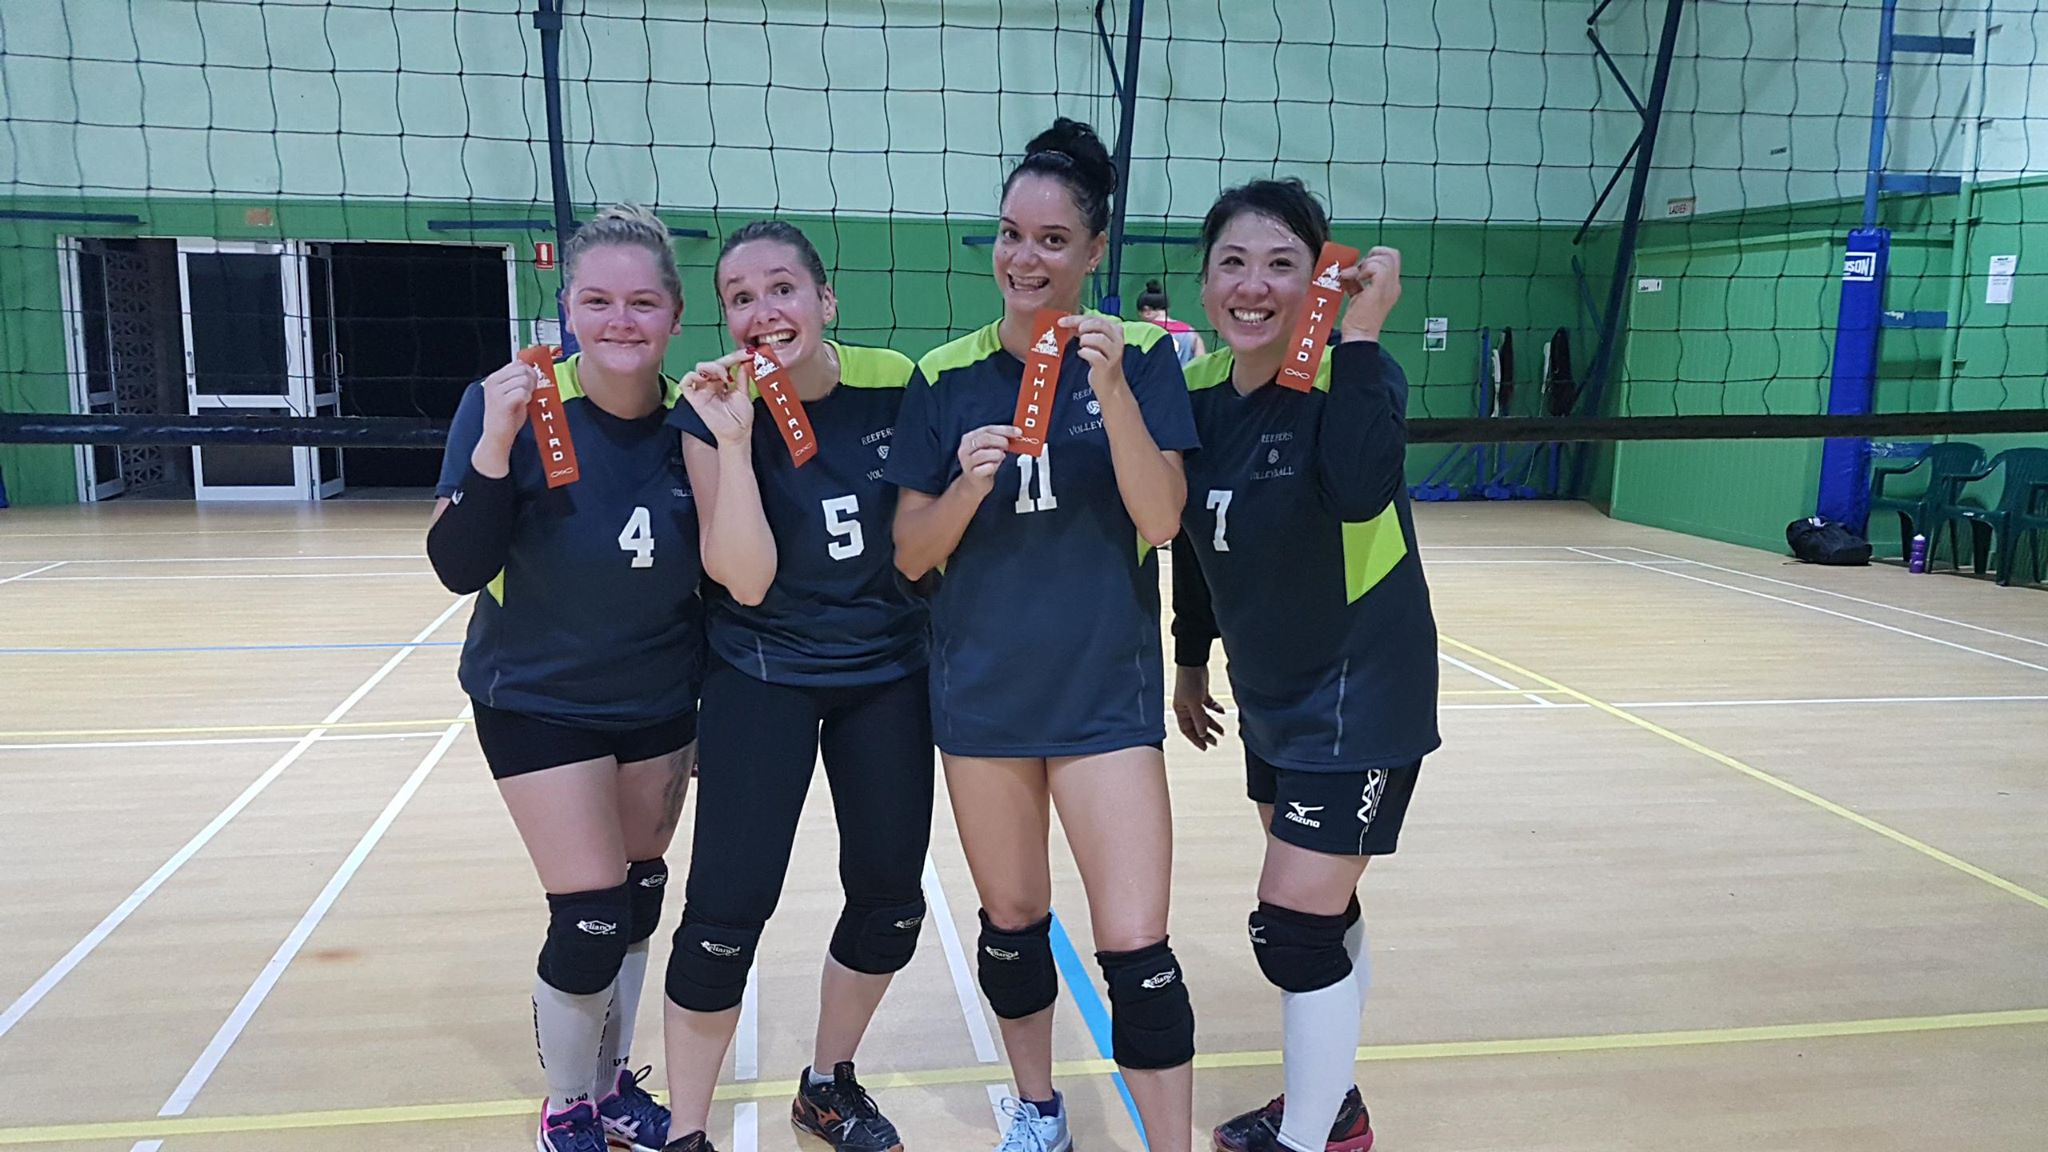 Ladies-4-A-Side-Season-1-Third-Place-2018